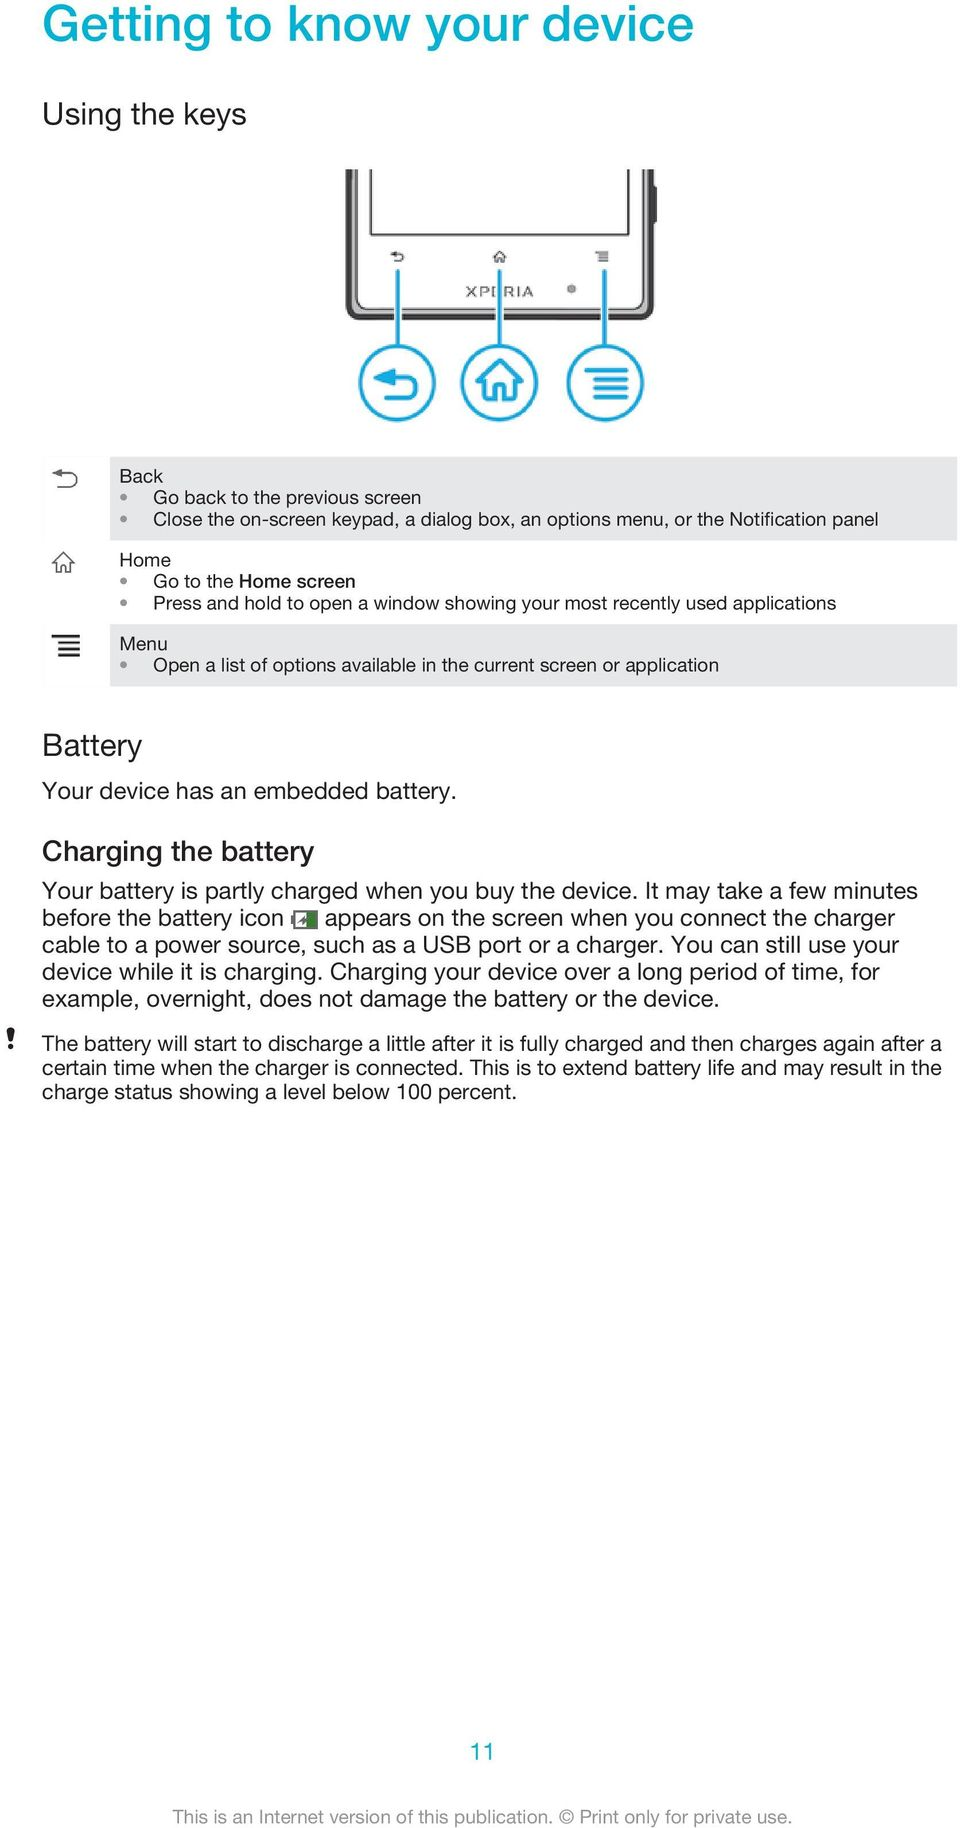 Charging the battery Your battery is partly charged when you buy the device.